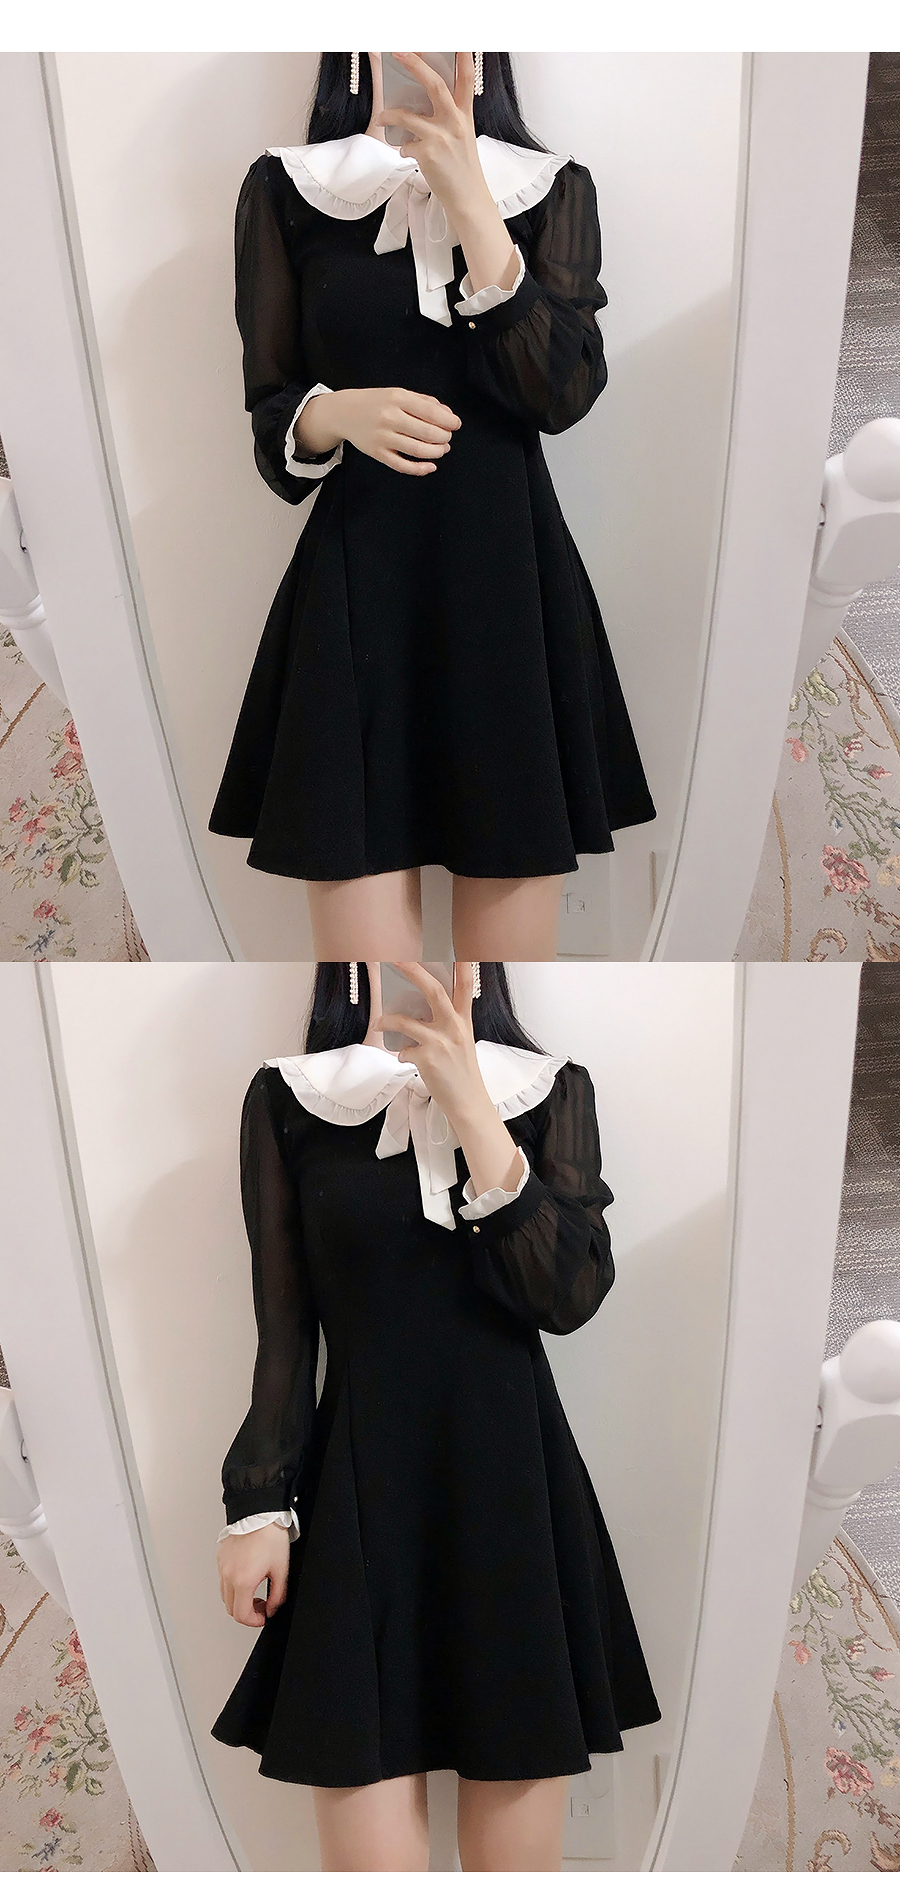 Miko Cararill Ribbon Dress